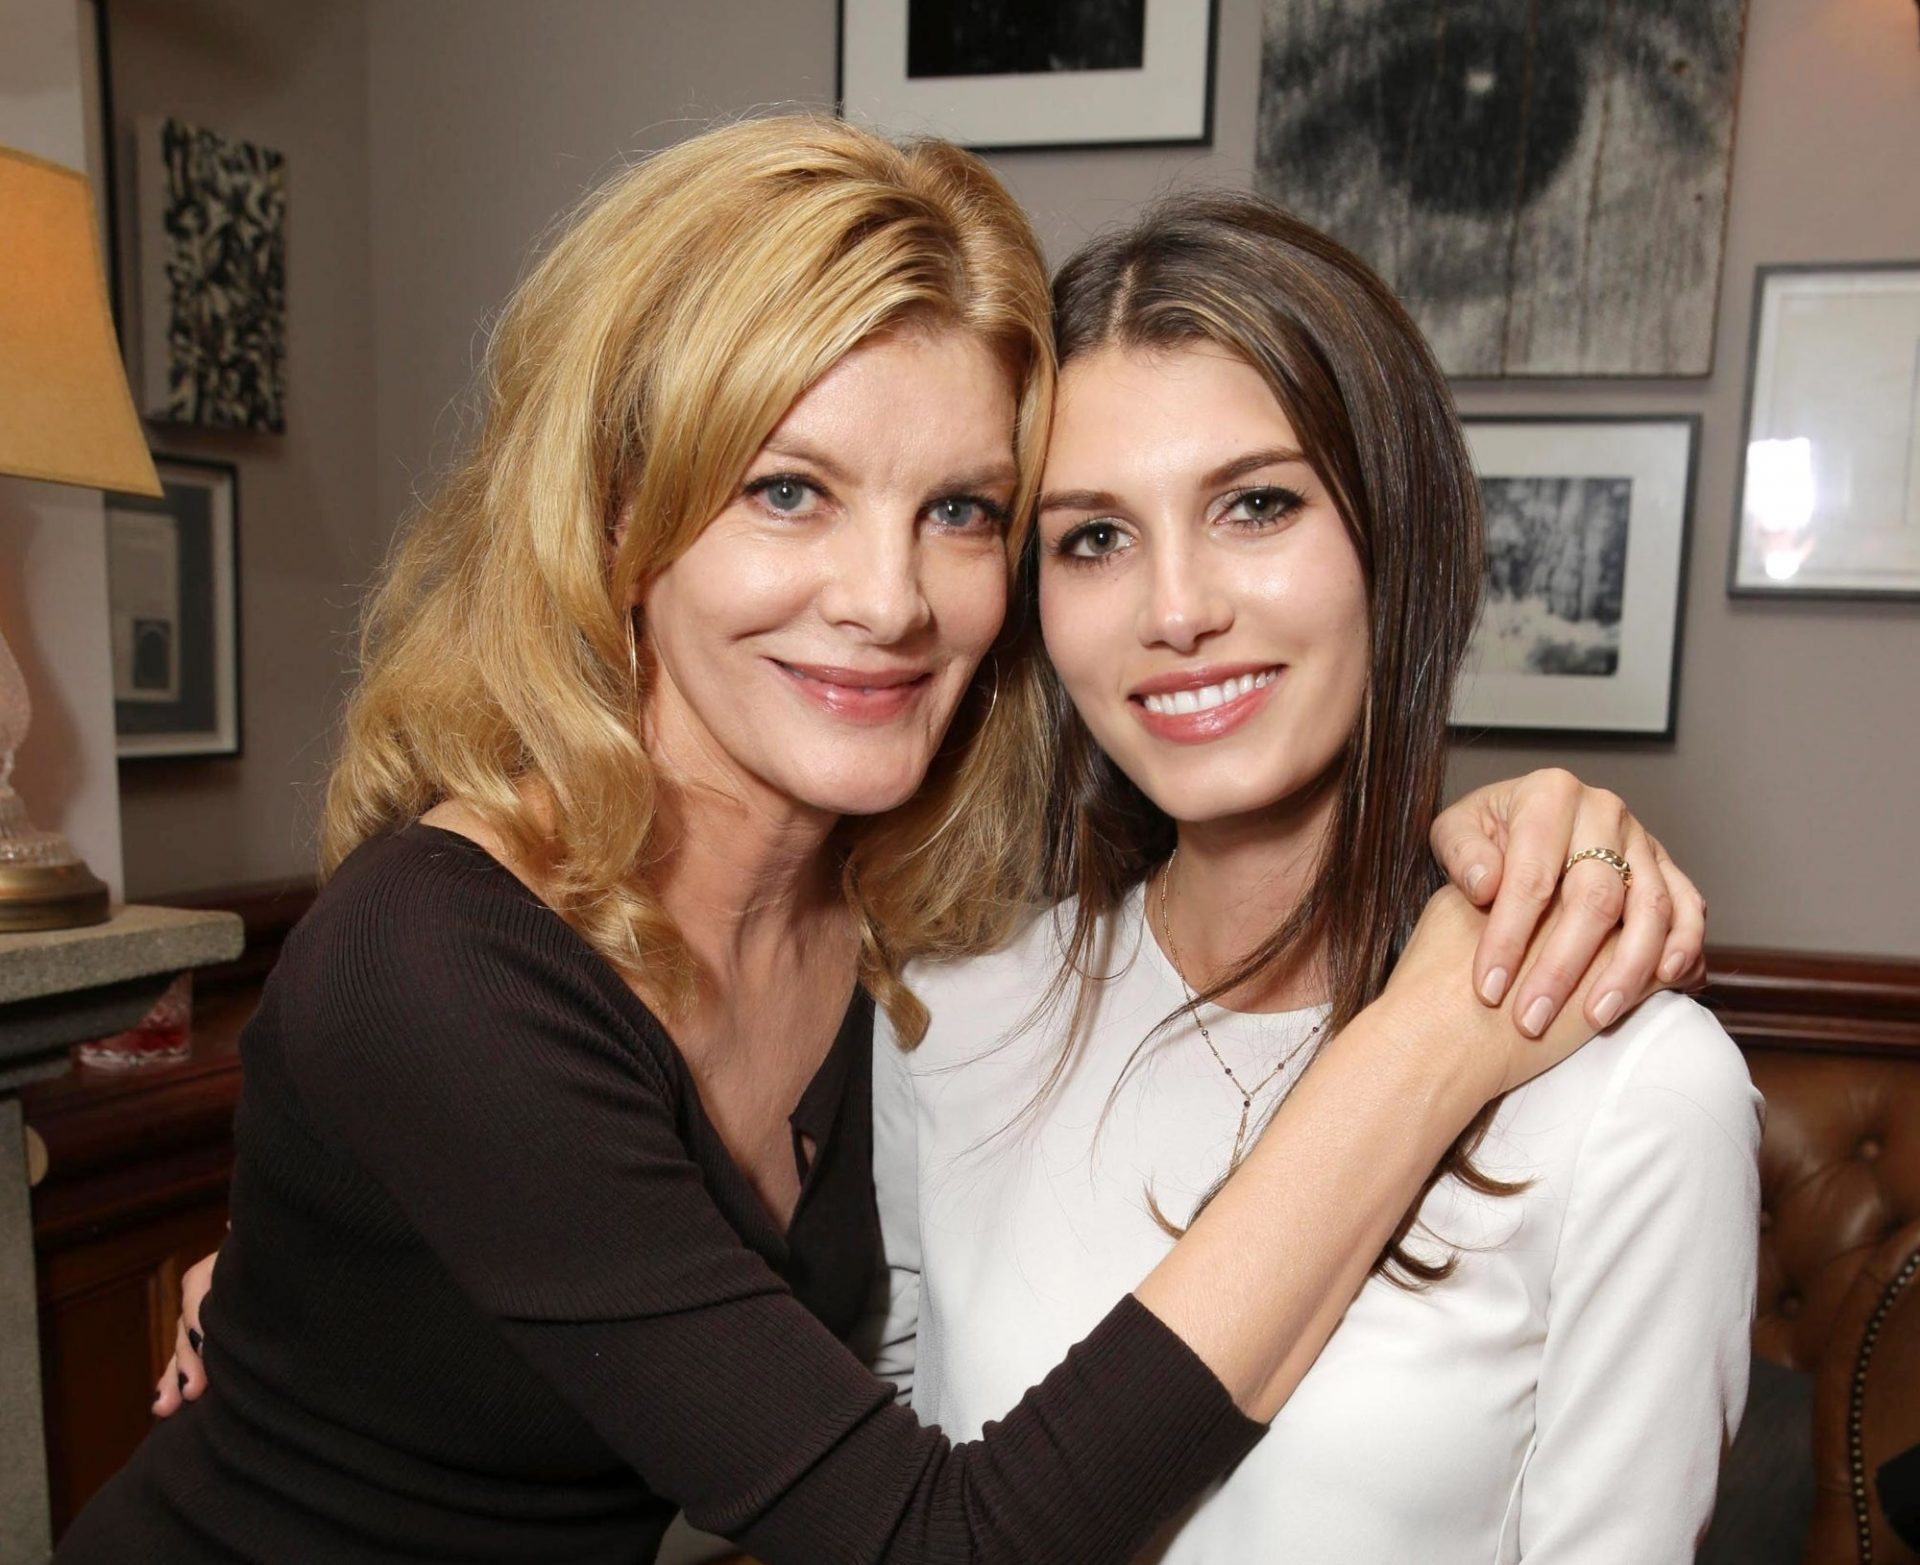 Rene Russo Family Photos, Daughter, Age, Height